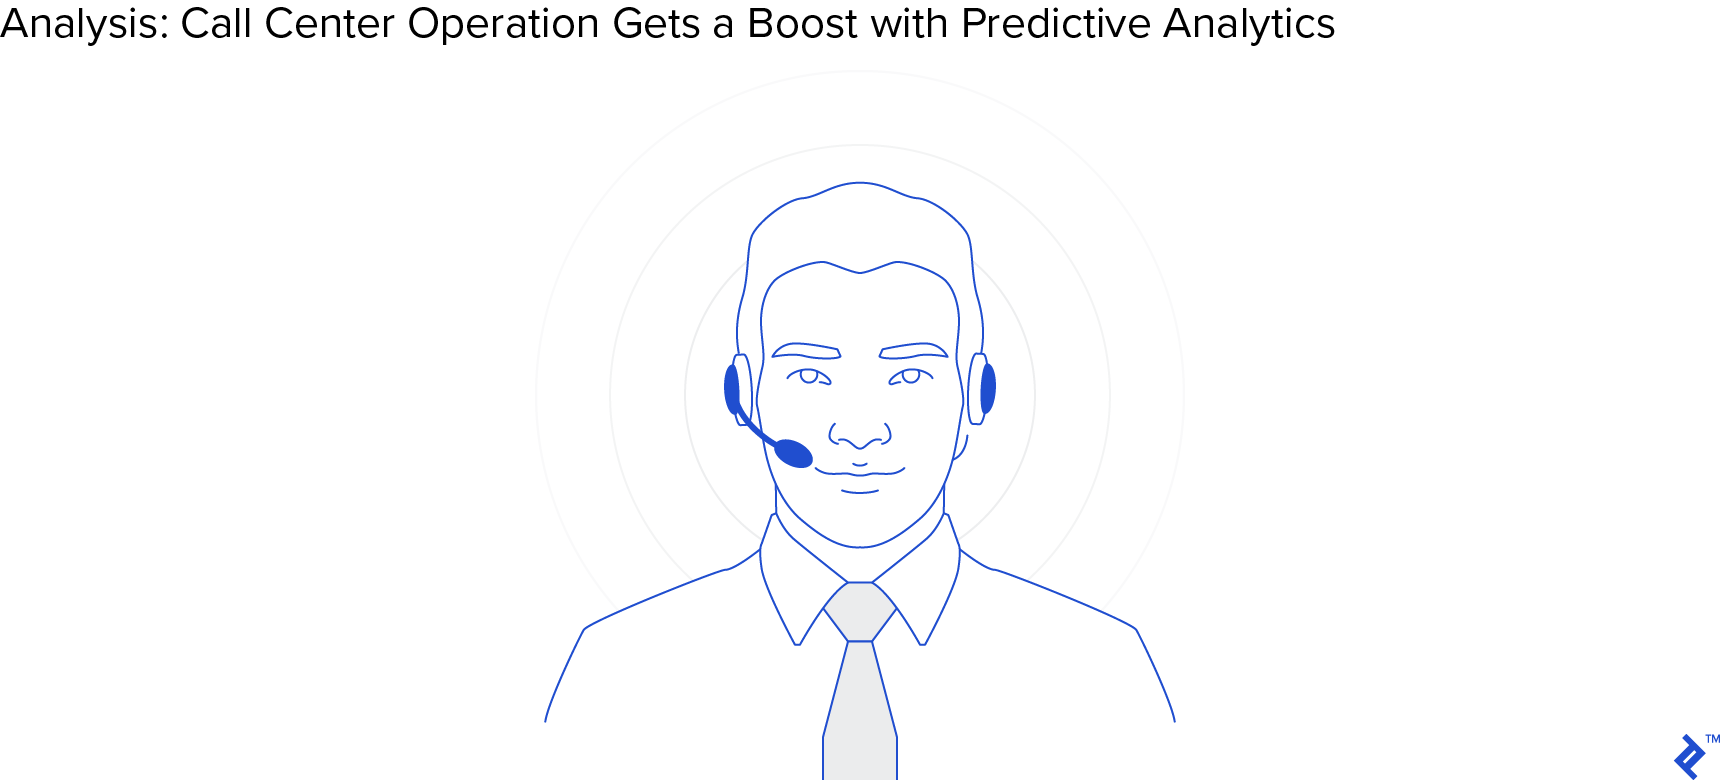 ROI analysis: Call center operation gets a boost with predictive analytics.